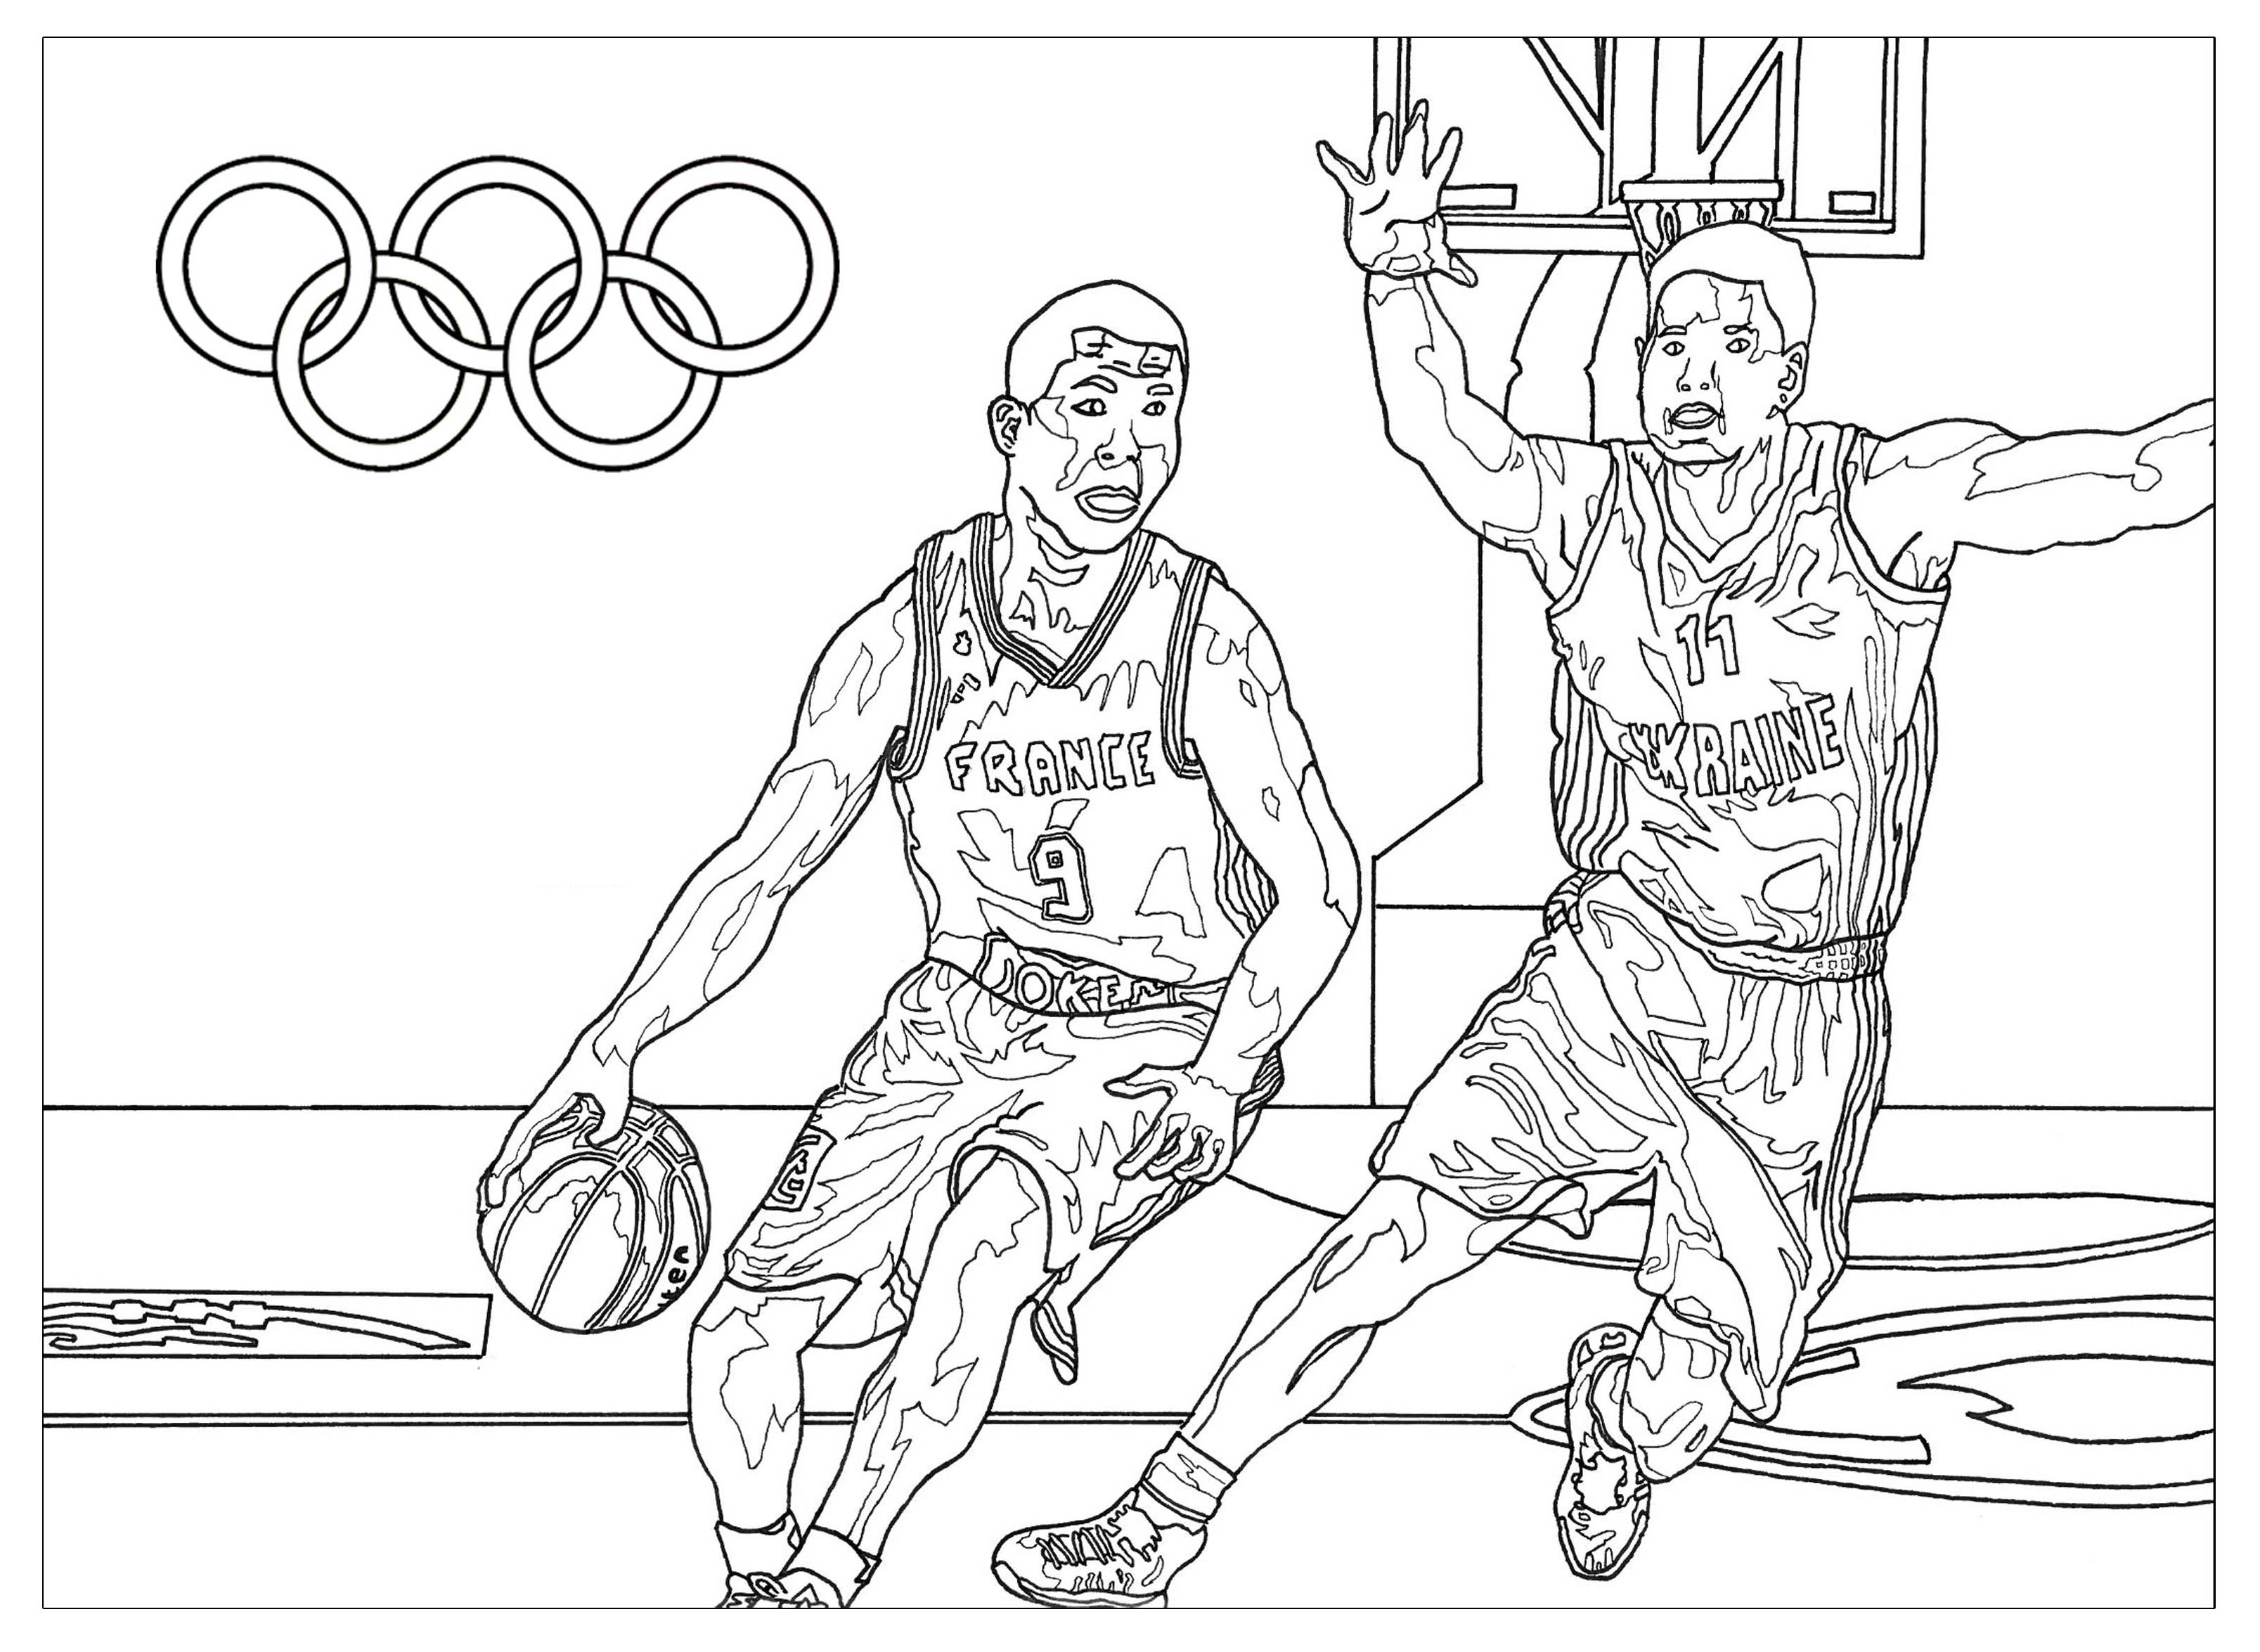 Olympic games free to color for kids - Olympic Games Kids ...